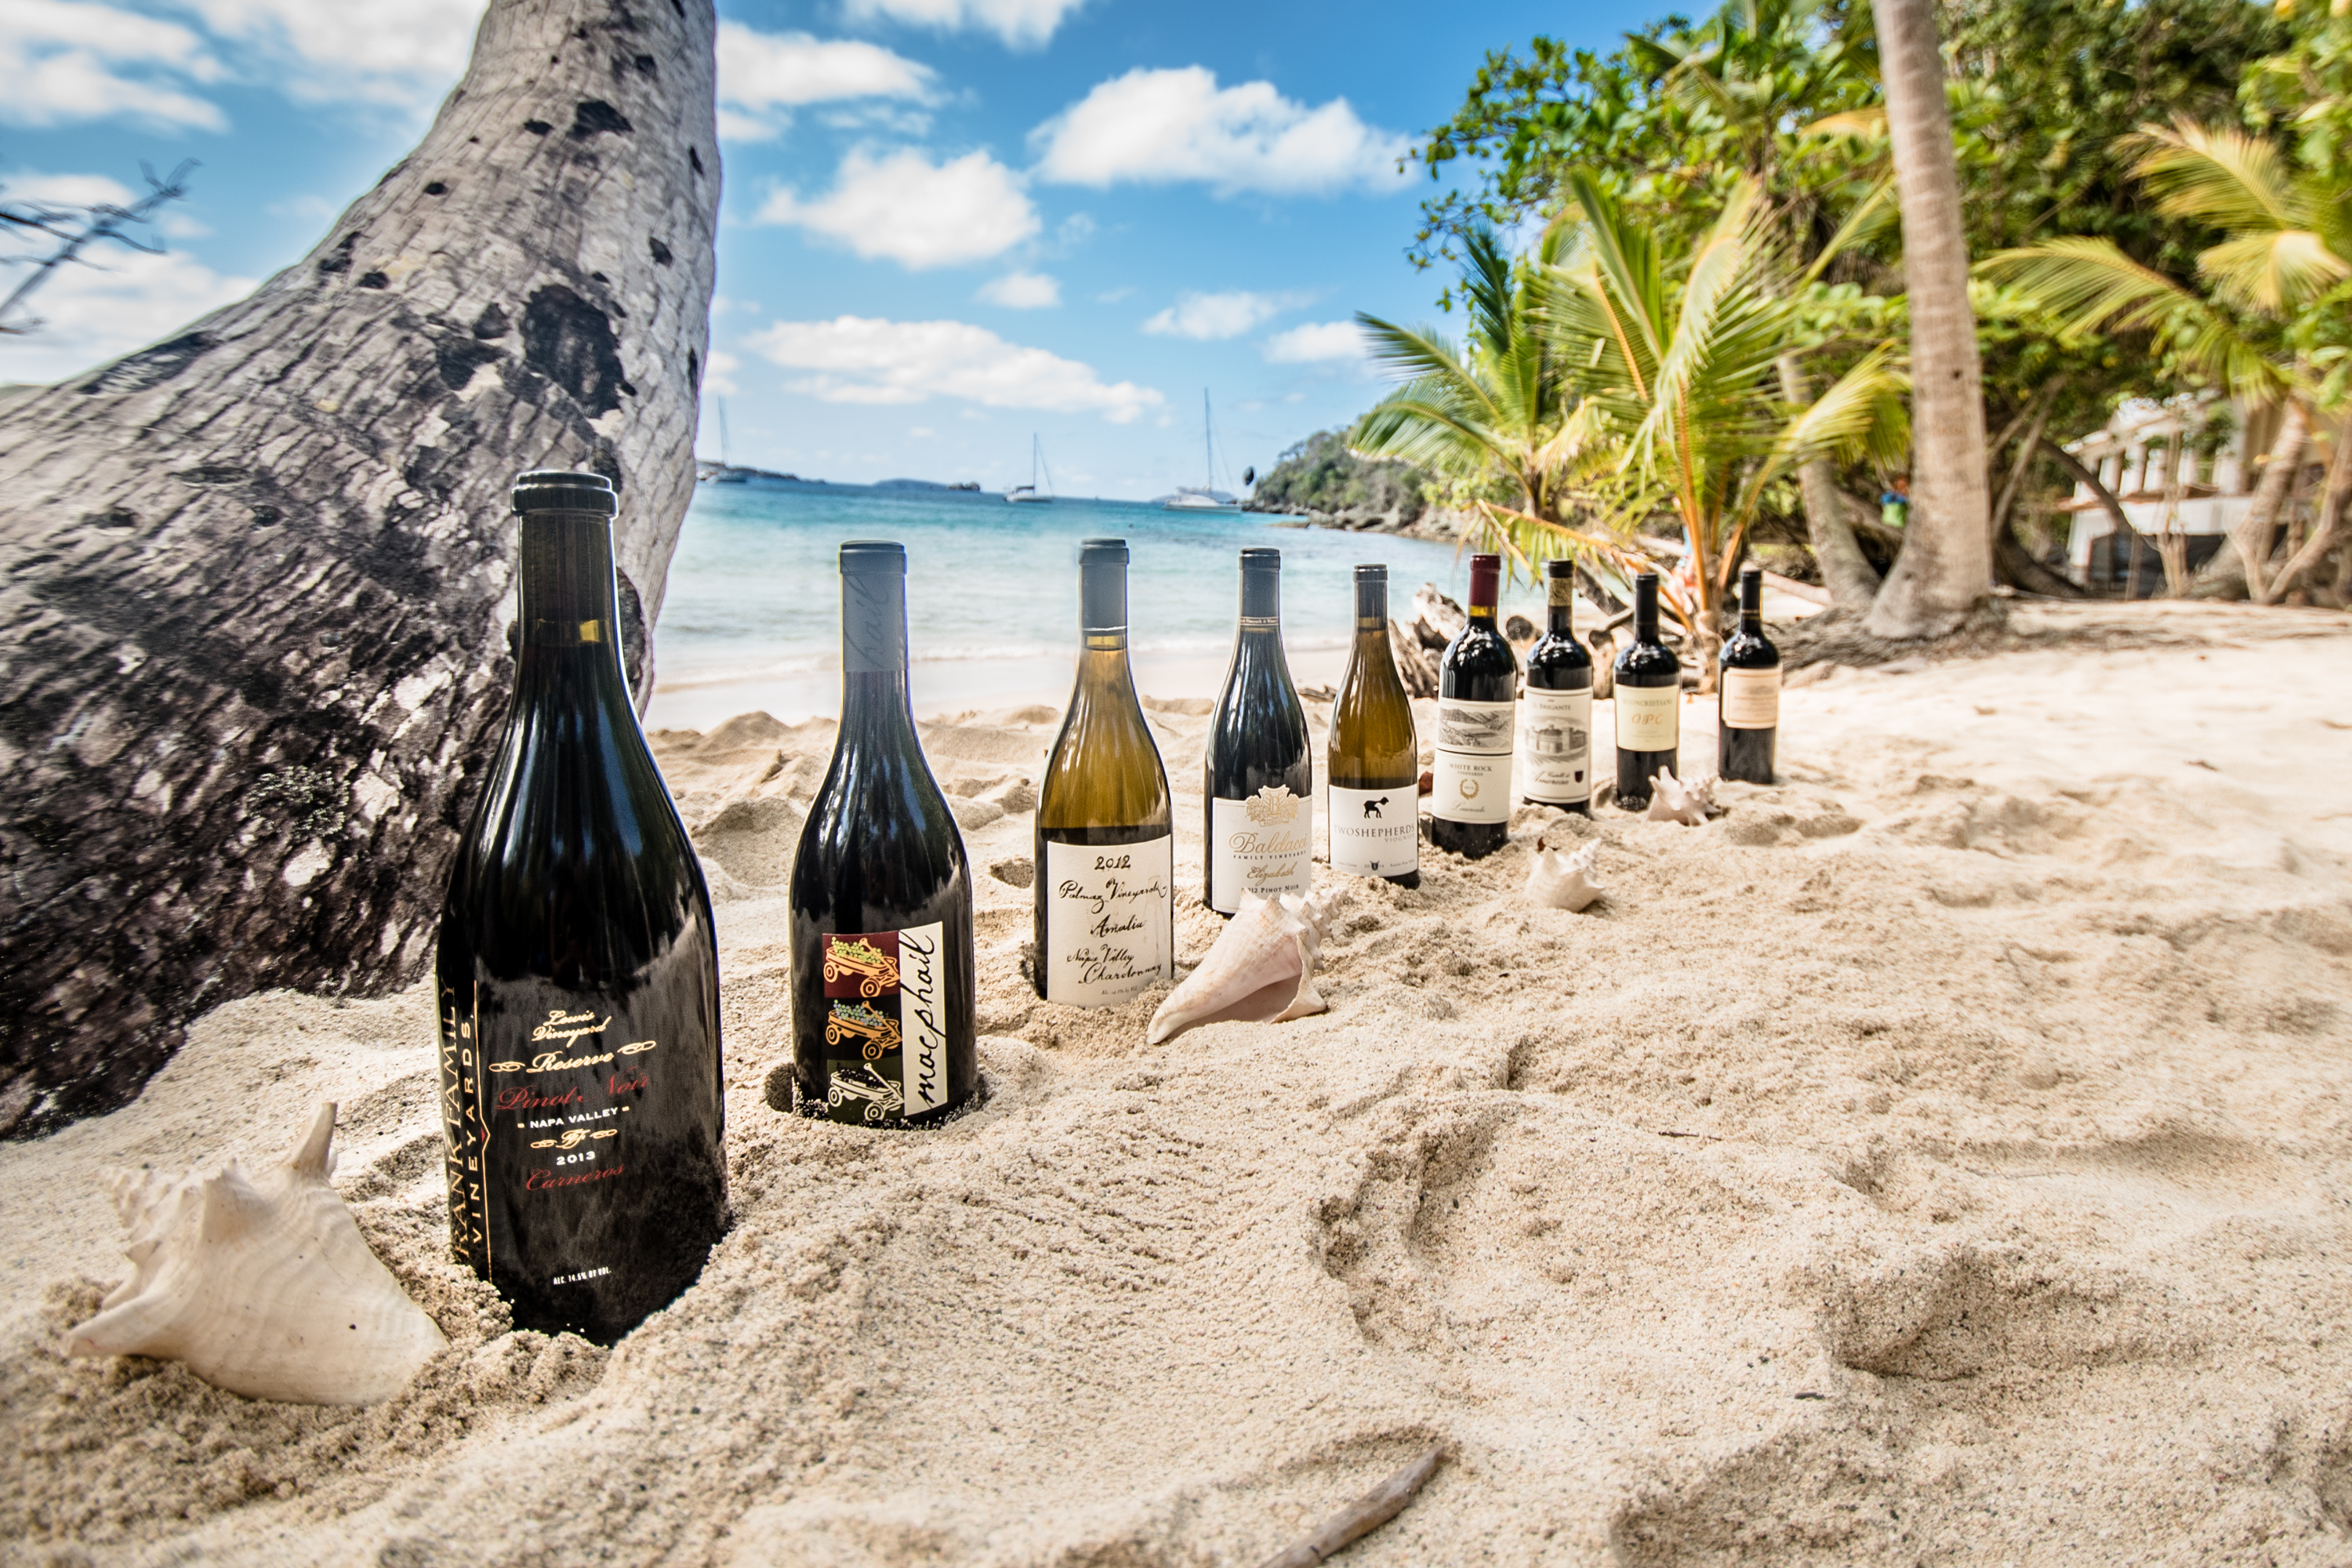 Caribbean Wine Club - Wines in the sand